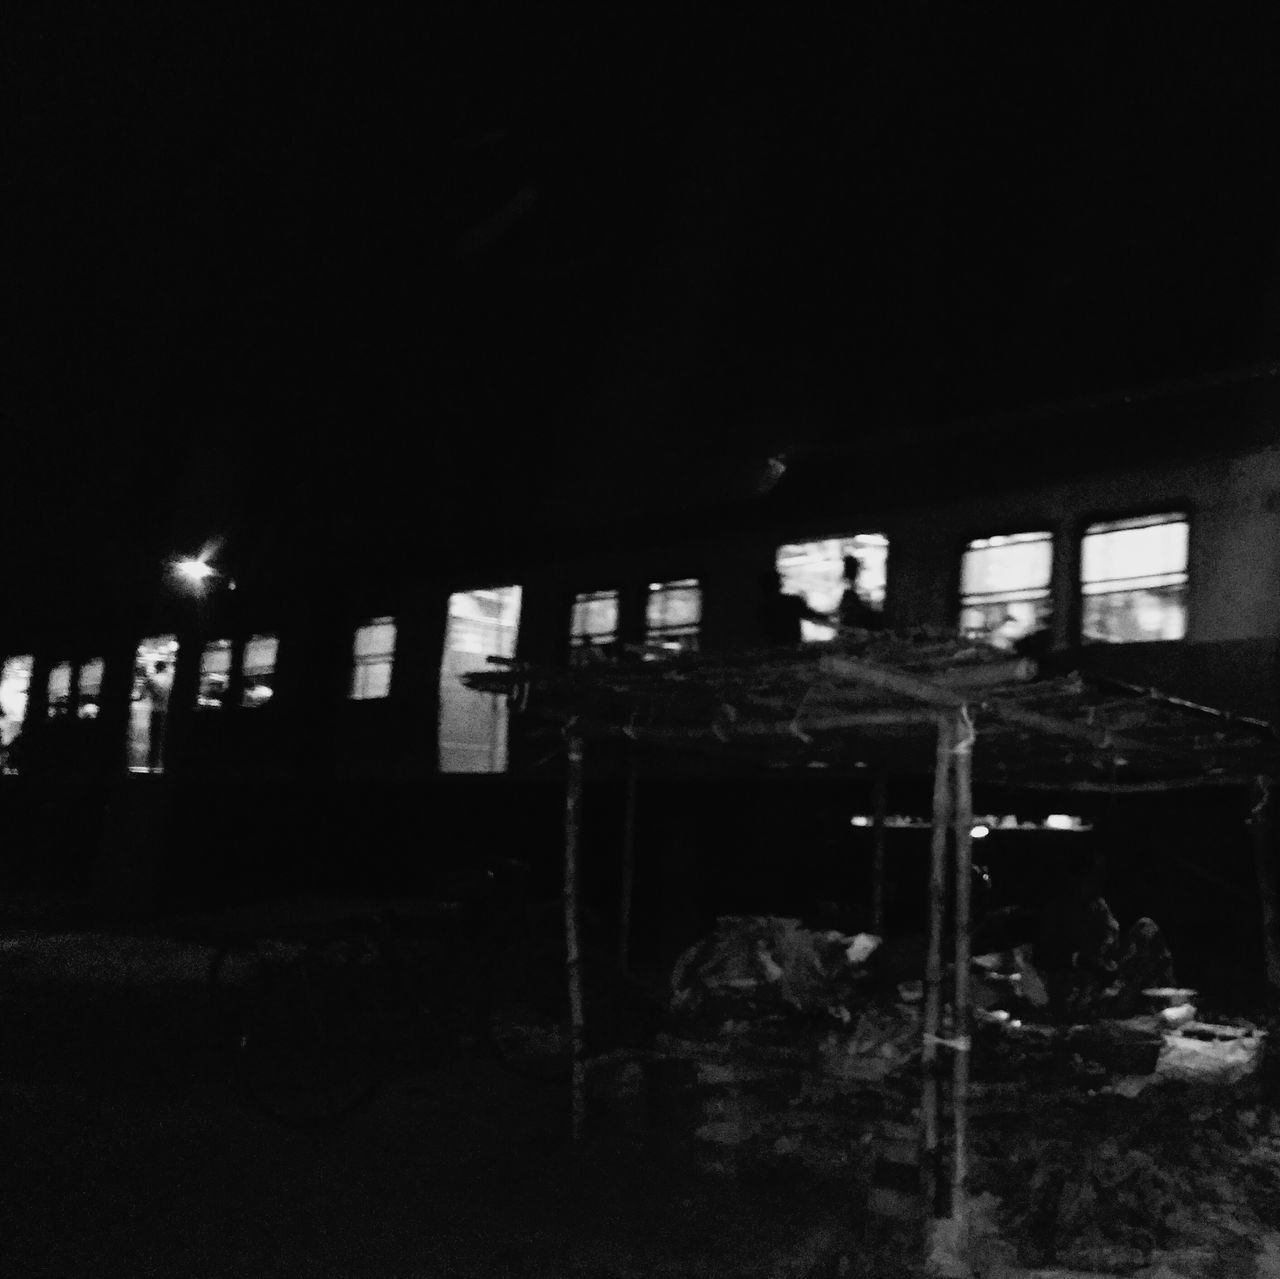 Somewhere in between of nowhere... Railway Tracks Old Withered Shacks Train Welcome To Black Welcome To Black